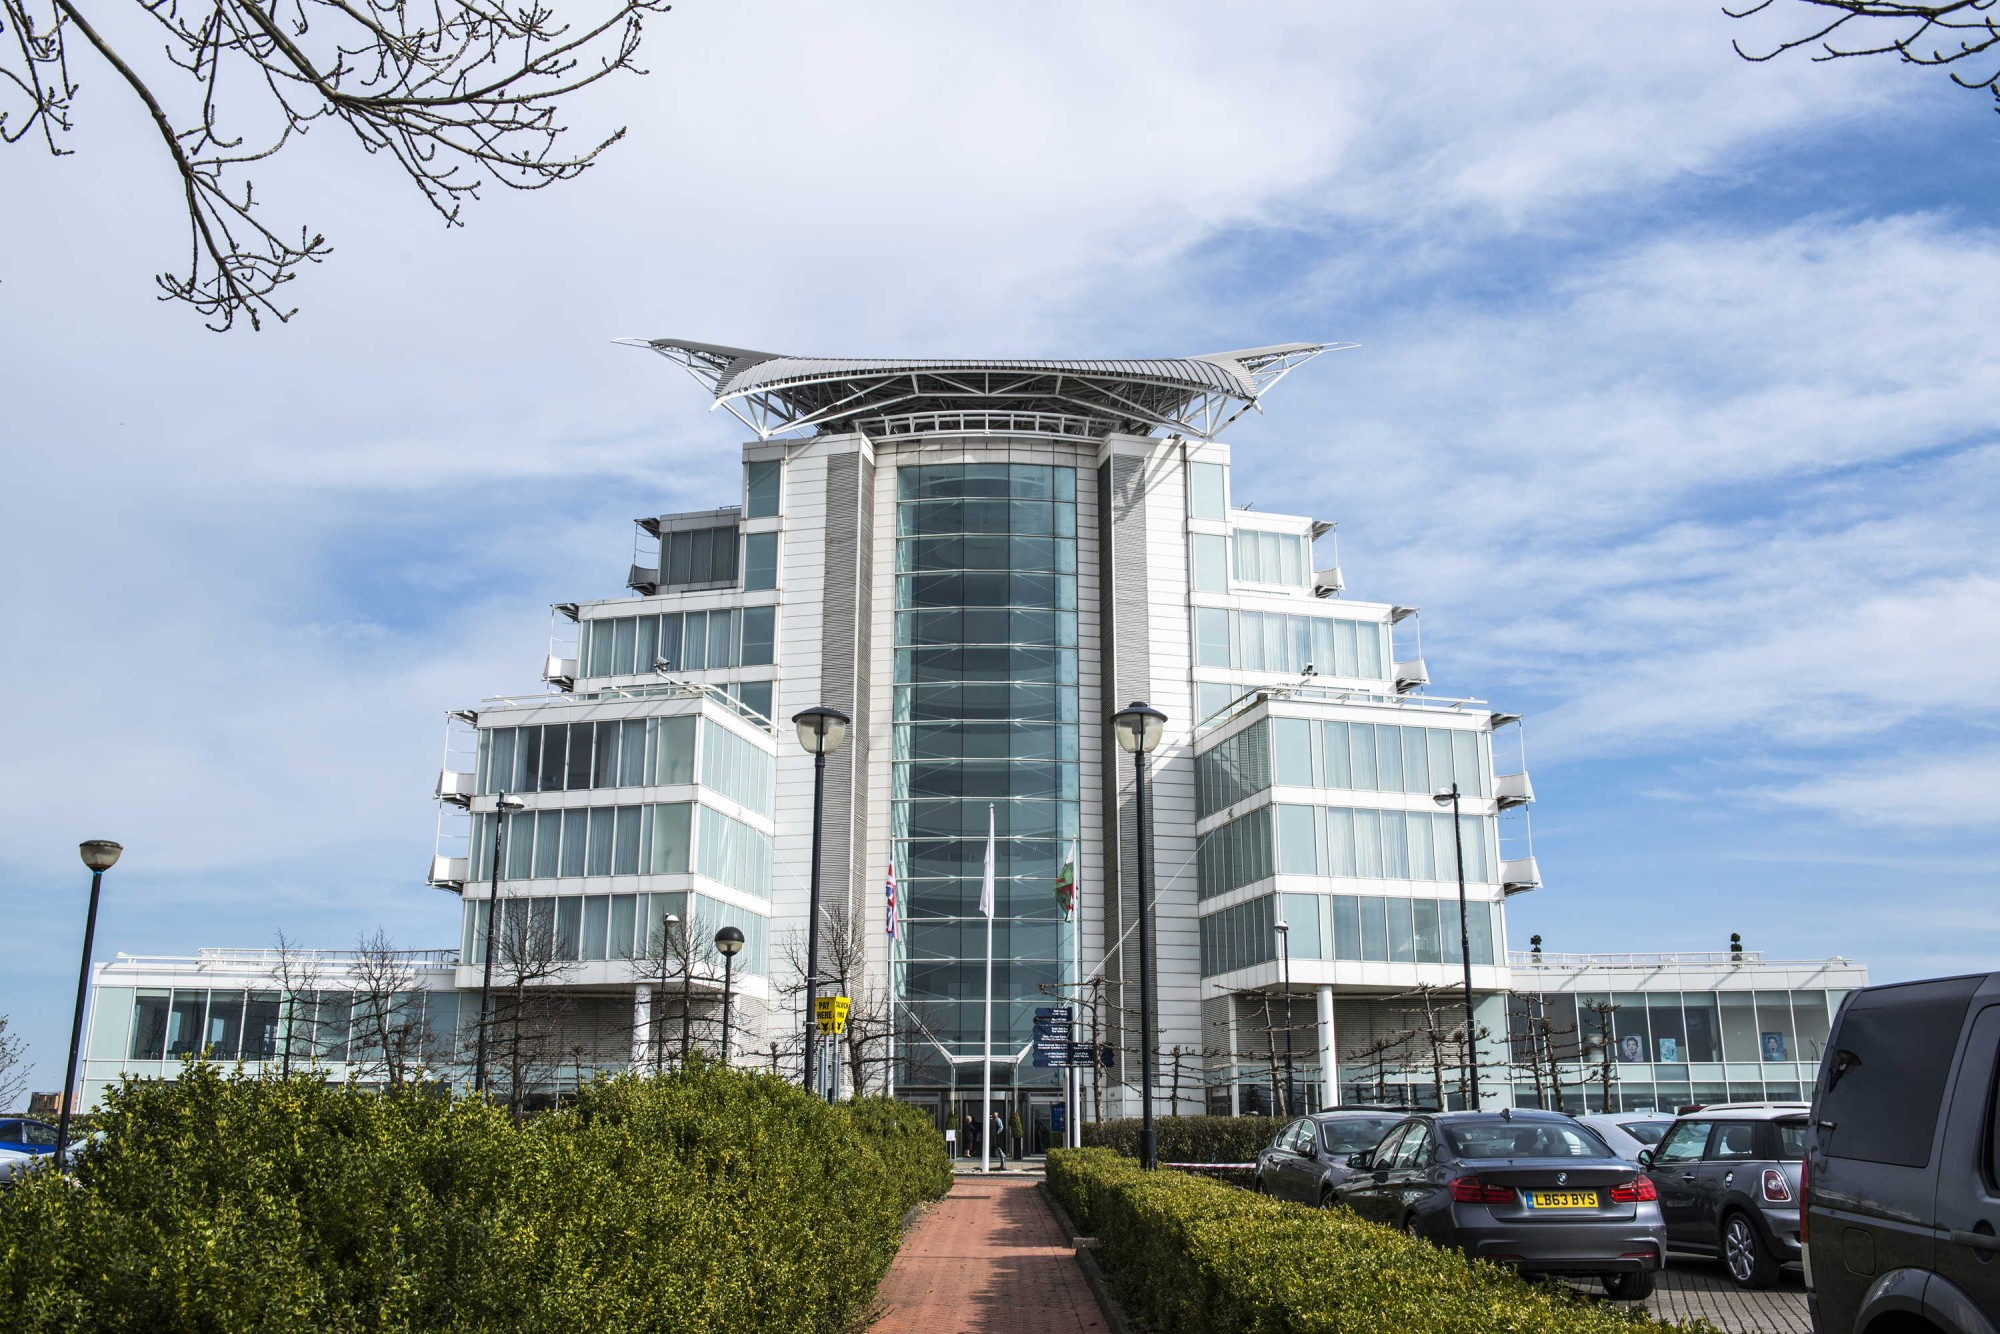 Picture of The St Davids Hotel, Cardiff